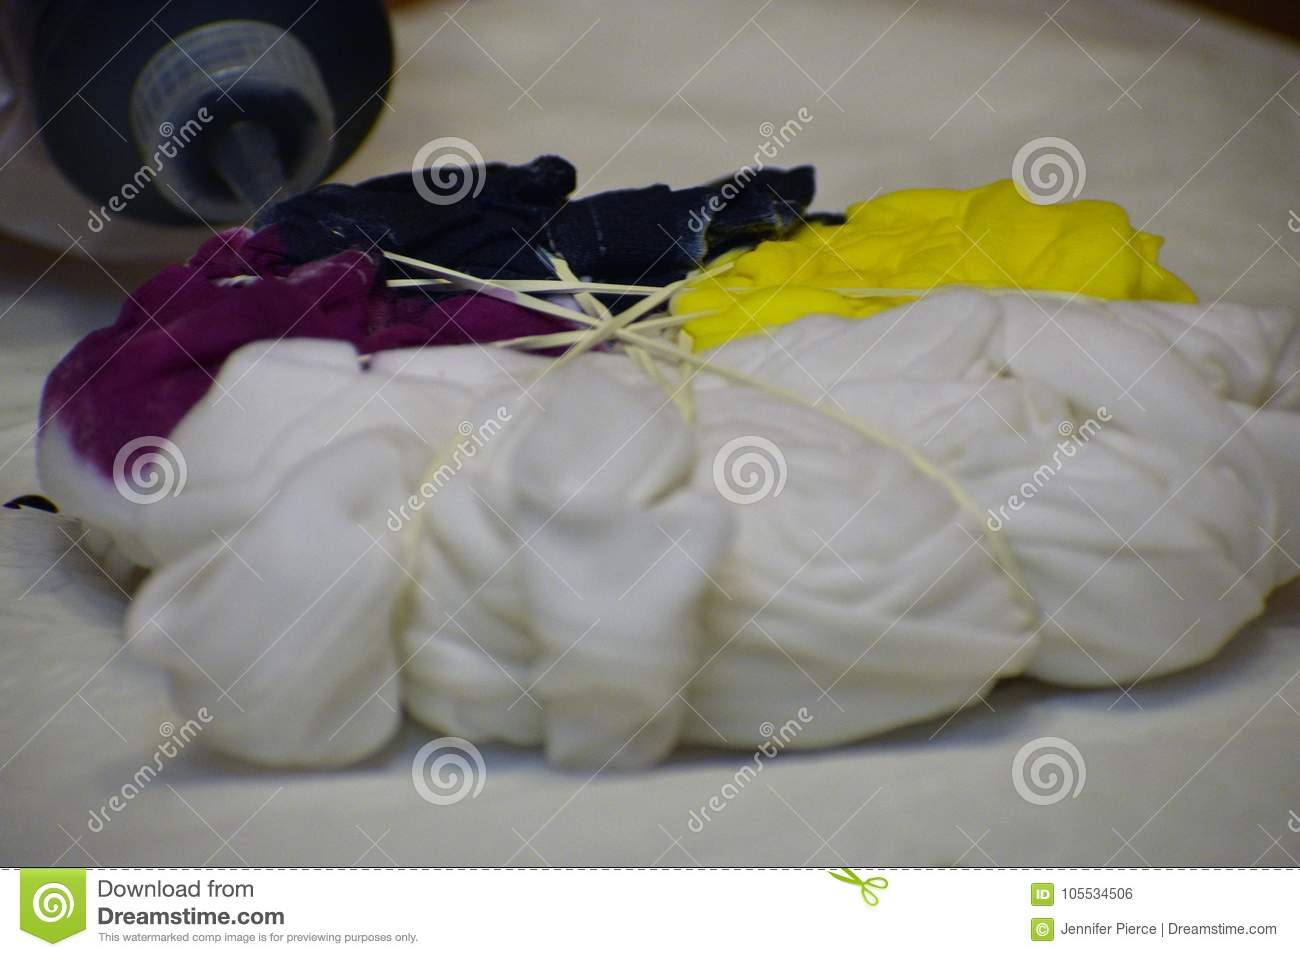 7db201c4 Making a tie-dye shirt stock photo. Image of culture - 105534506